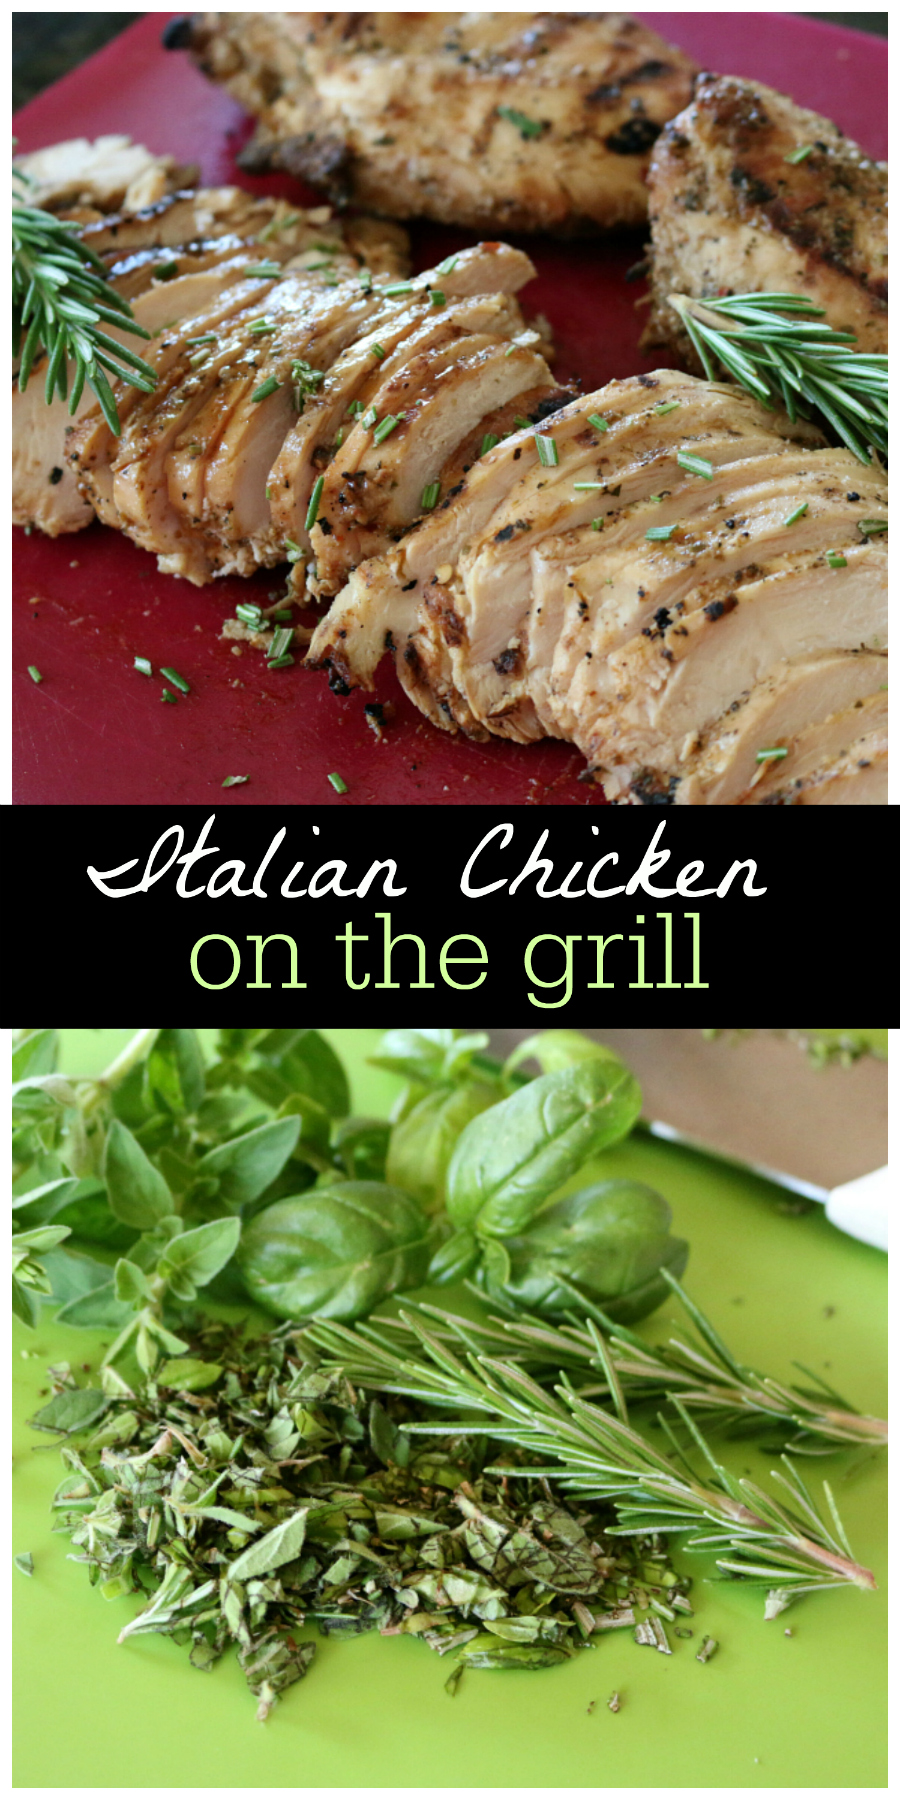 Italian Herb Chicken on the Grill | CeceliasGoodStuff.com | Good Food for Good People